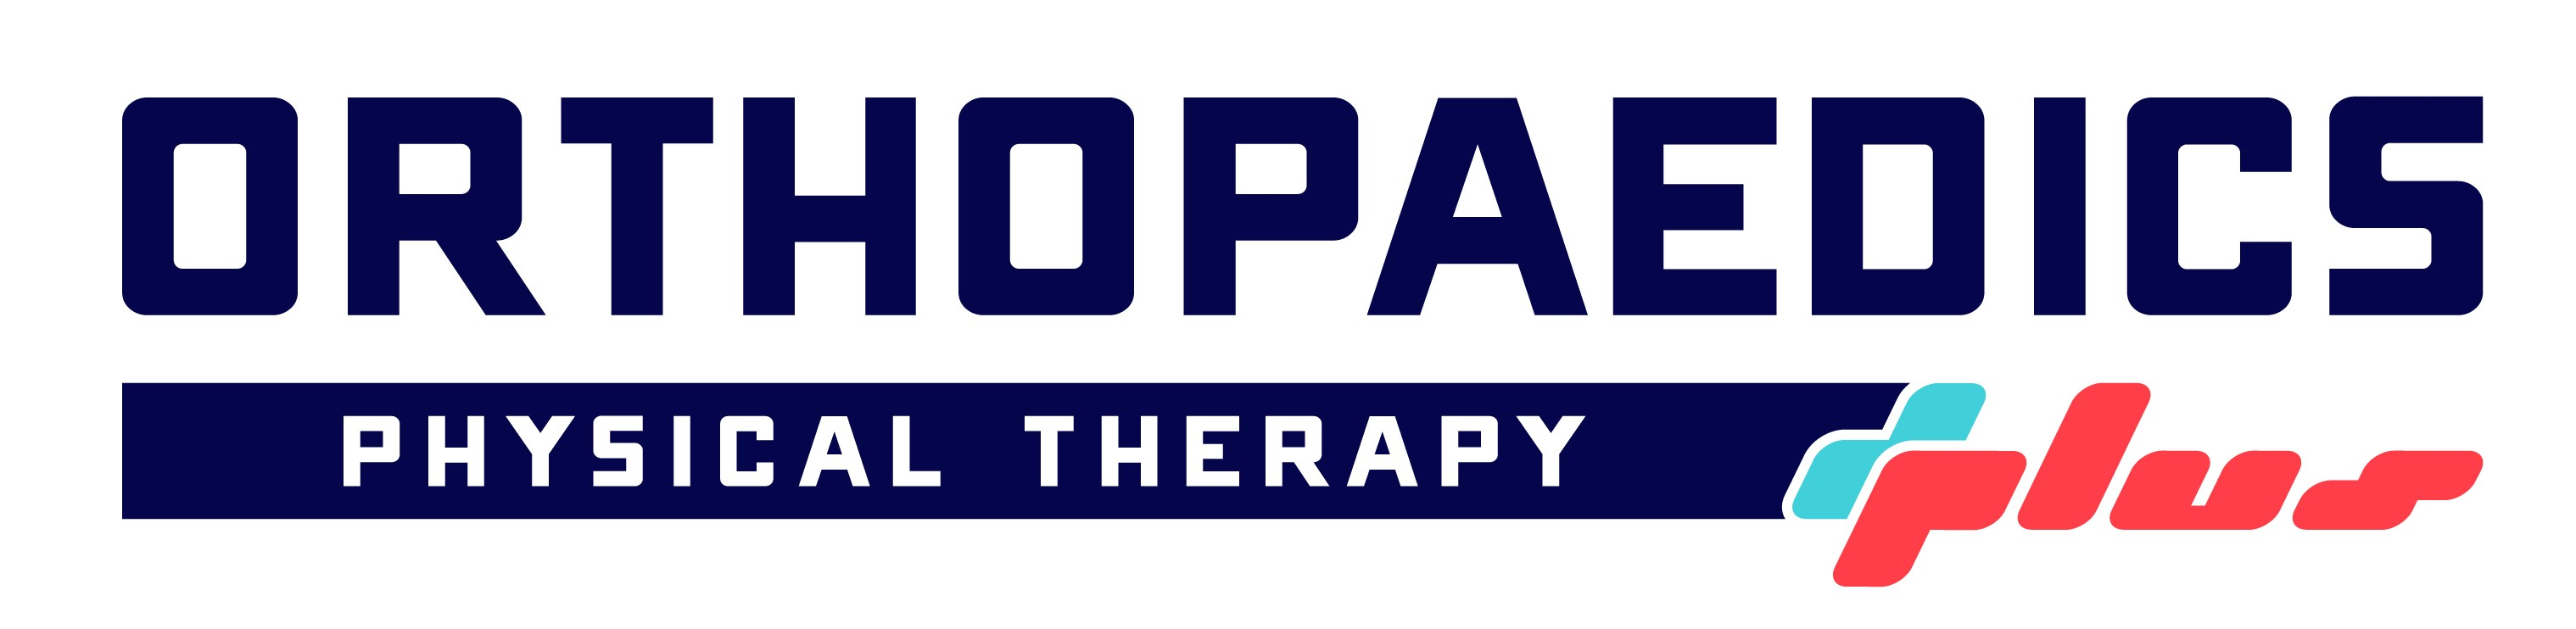 Orthopaedics Plus Physical Therapy